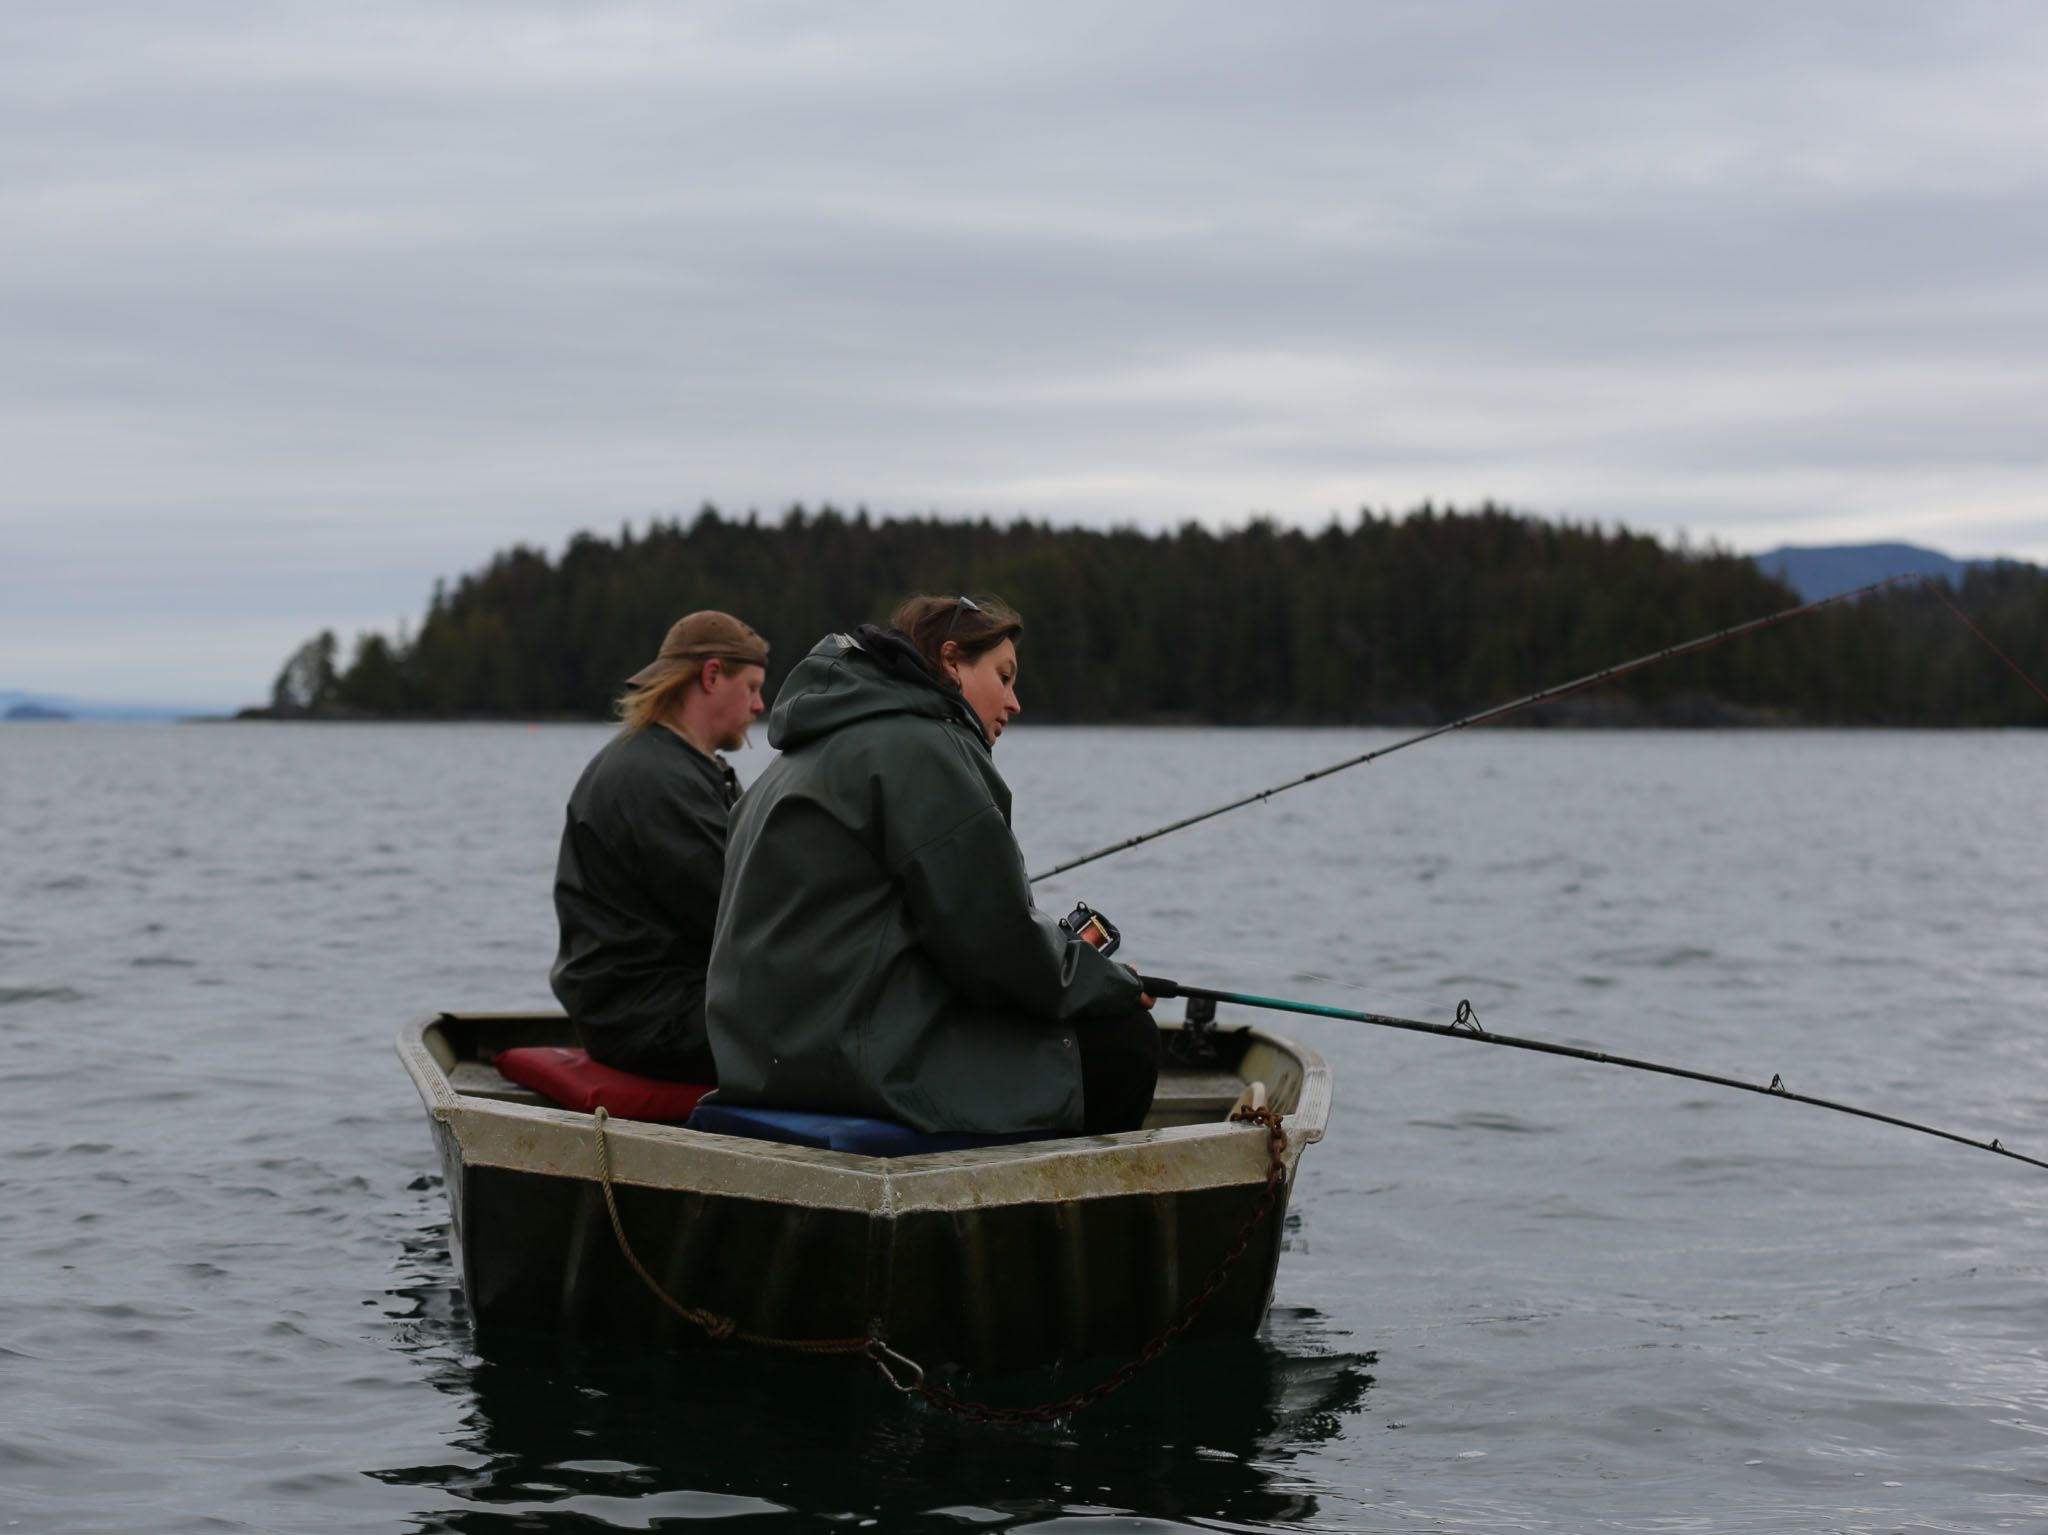 David Squibb & Kristina Jackson are out on their skiff jigging for fish on the waters outside... [Photo of the day - May 2021]